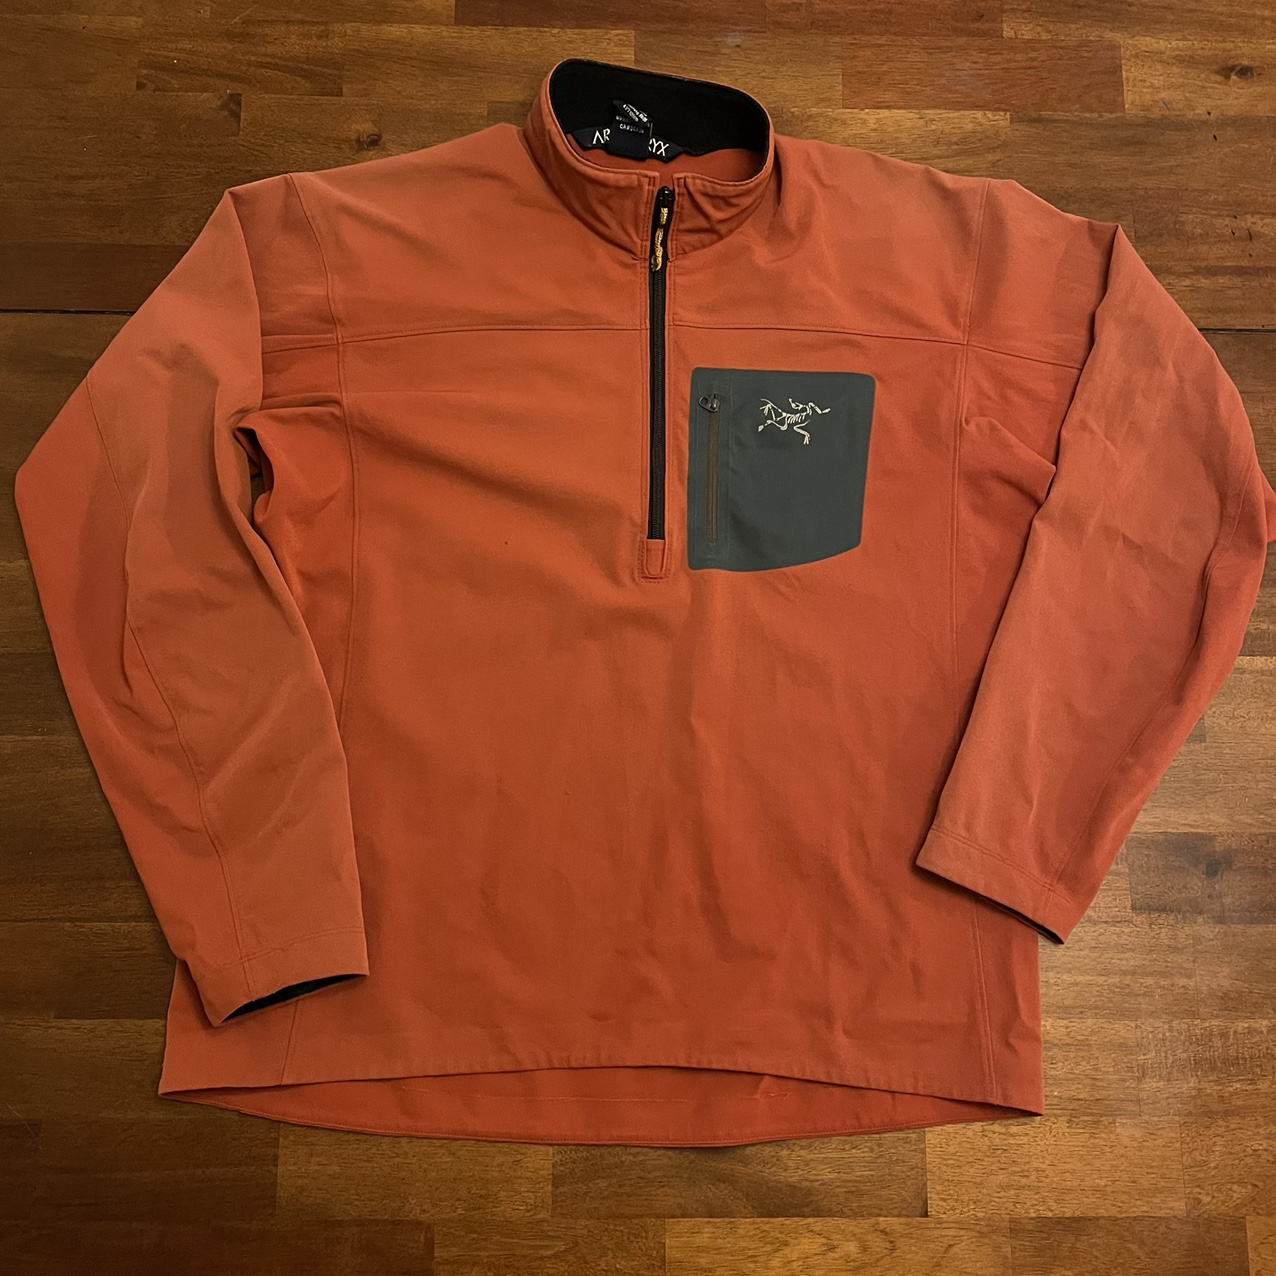 Product Image 1 - Arc'teryx Pullover Jacket, size L,